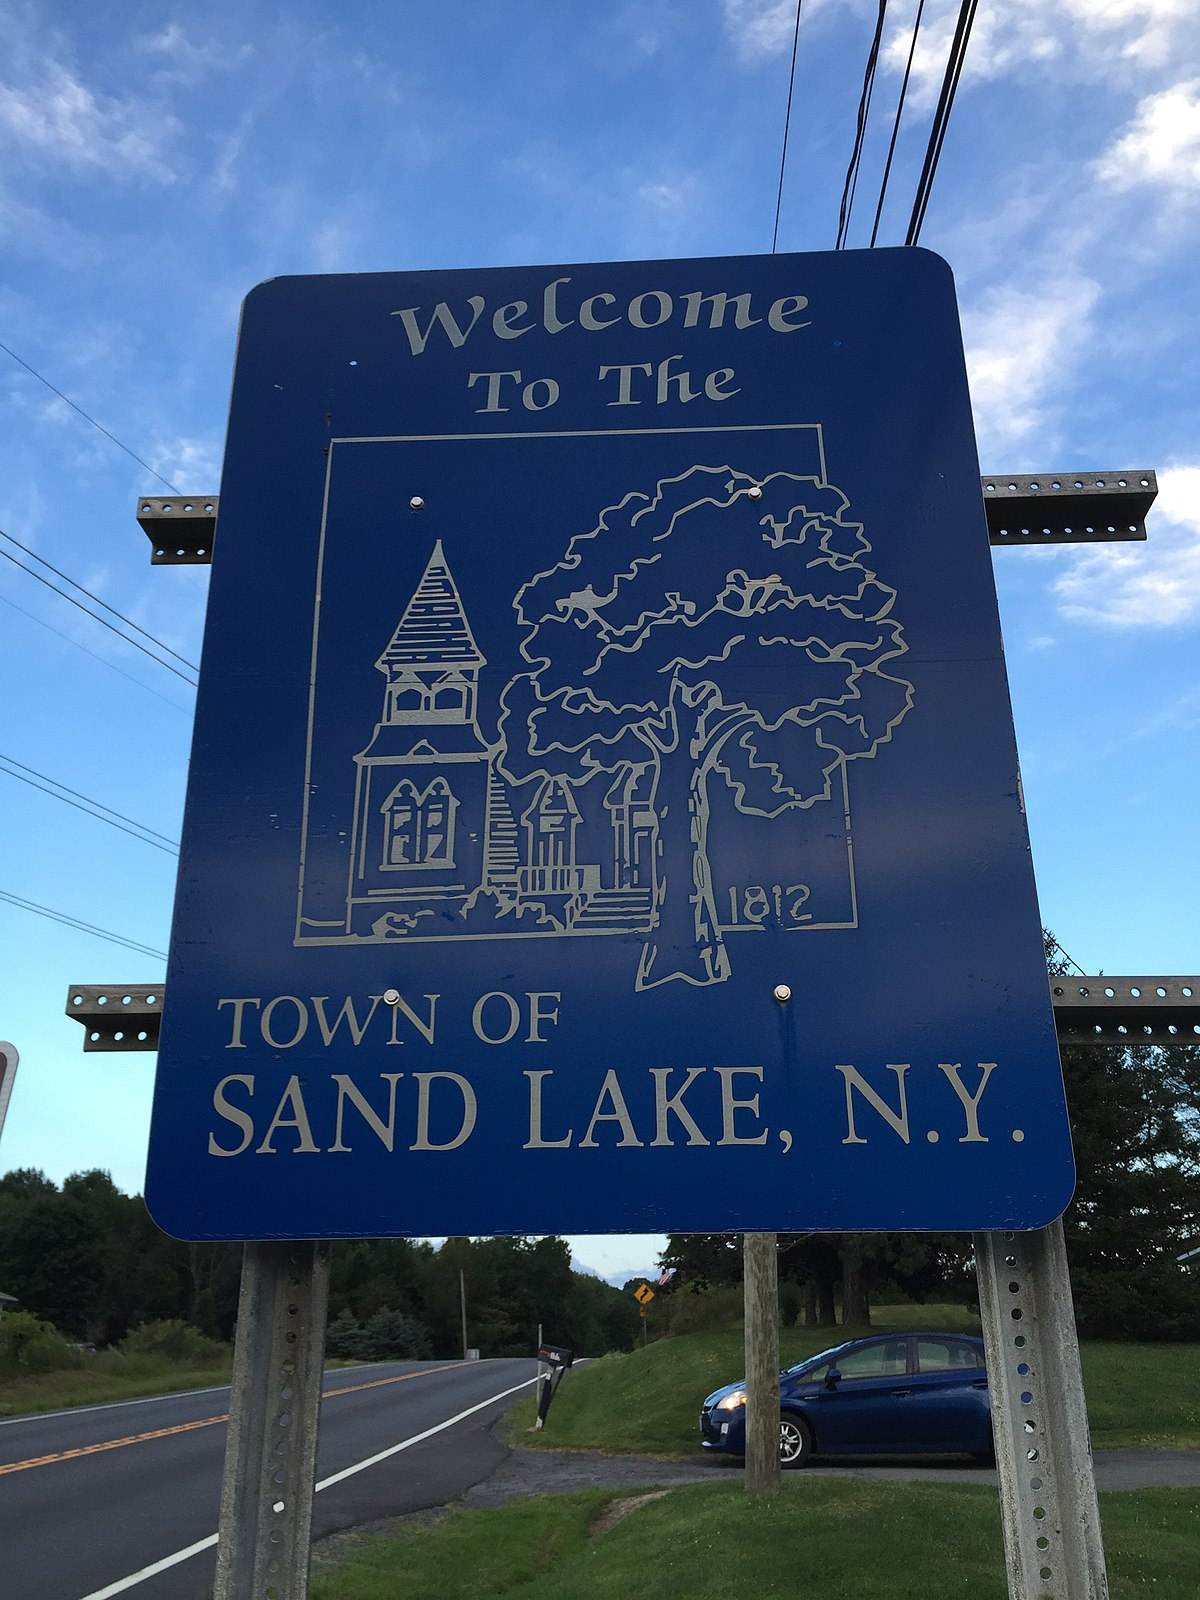 west sand lake personals Personal ads for west sand lake, ny are a great way to find a life partner, movie date, or a quick hookup personals are for people local to west sand lake, ny and are for ages 18+ of either.